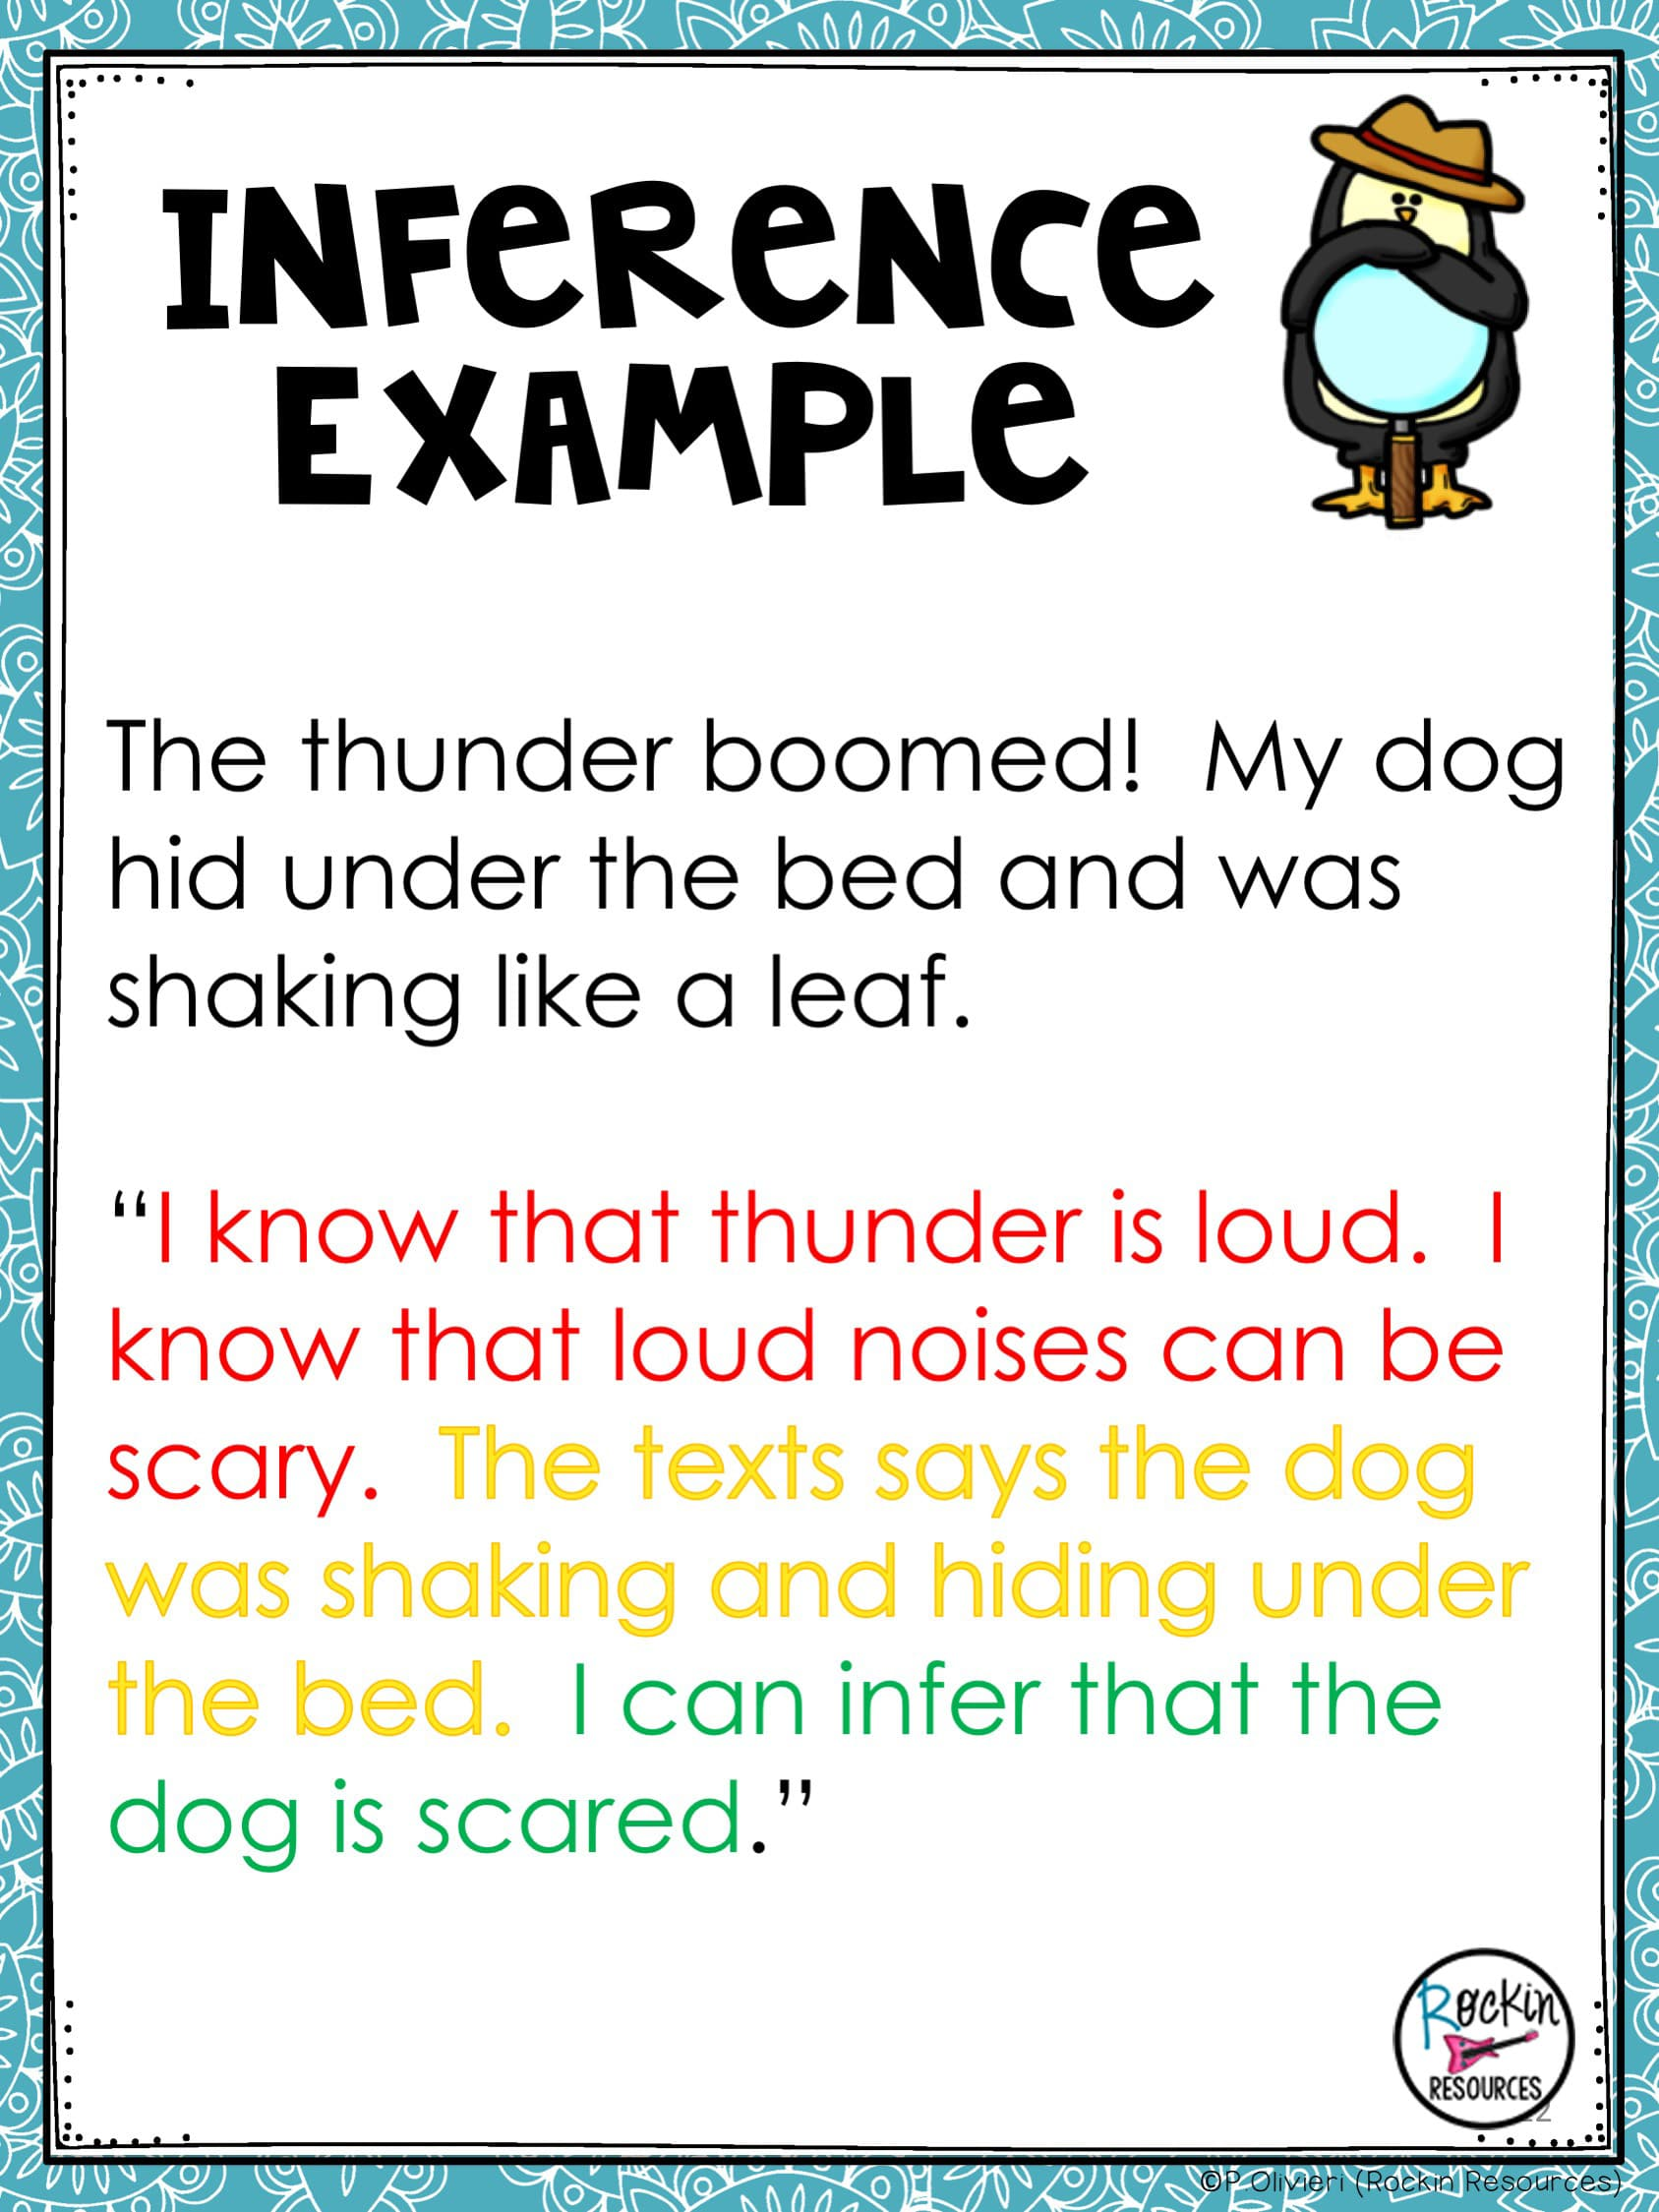 Inference Text Example Rockin Resources